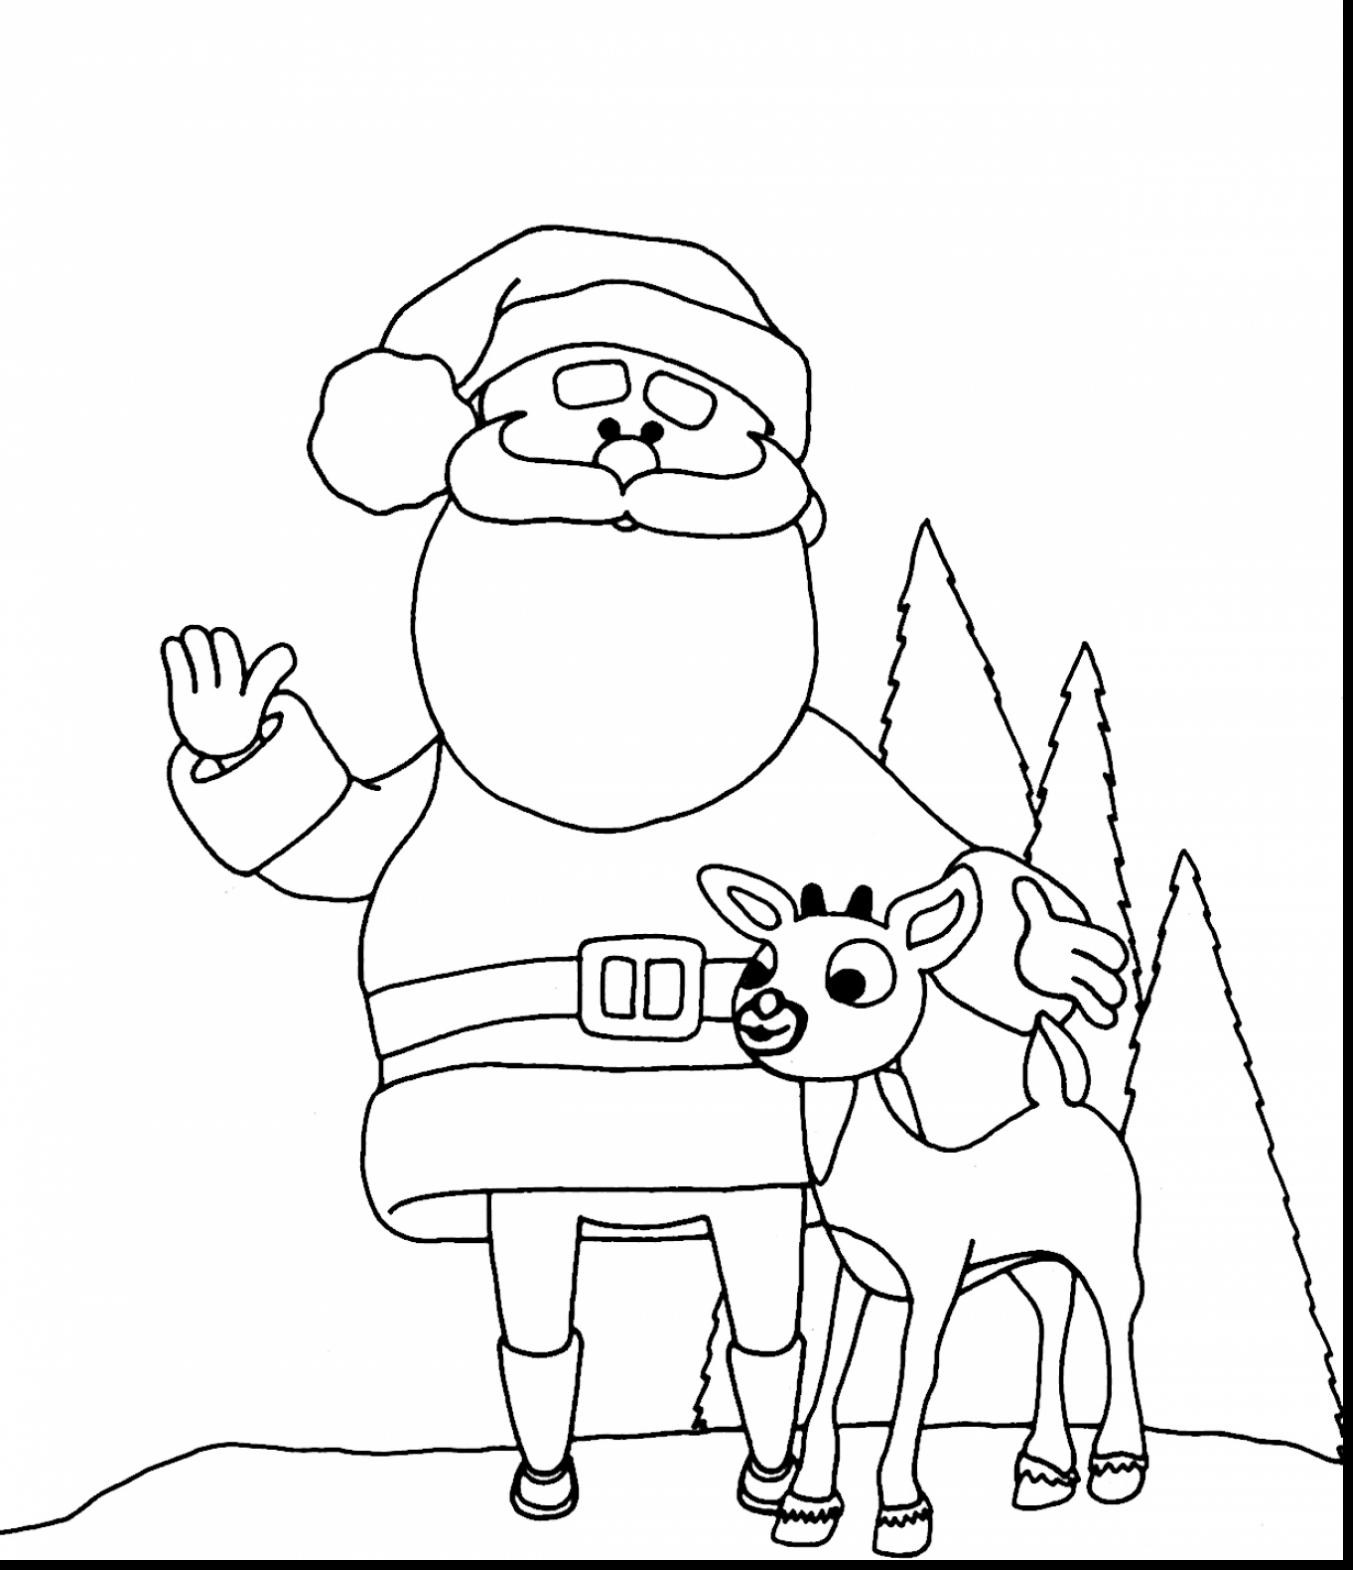 1353x1570 Rudolph And Santa Claus Coloring Pages For Kids Best Of Unique